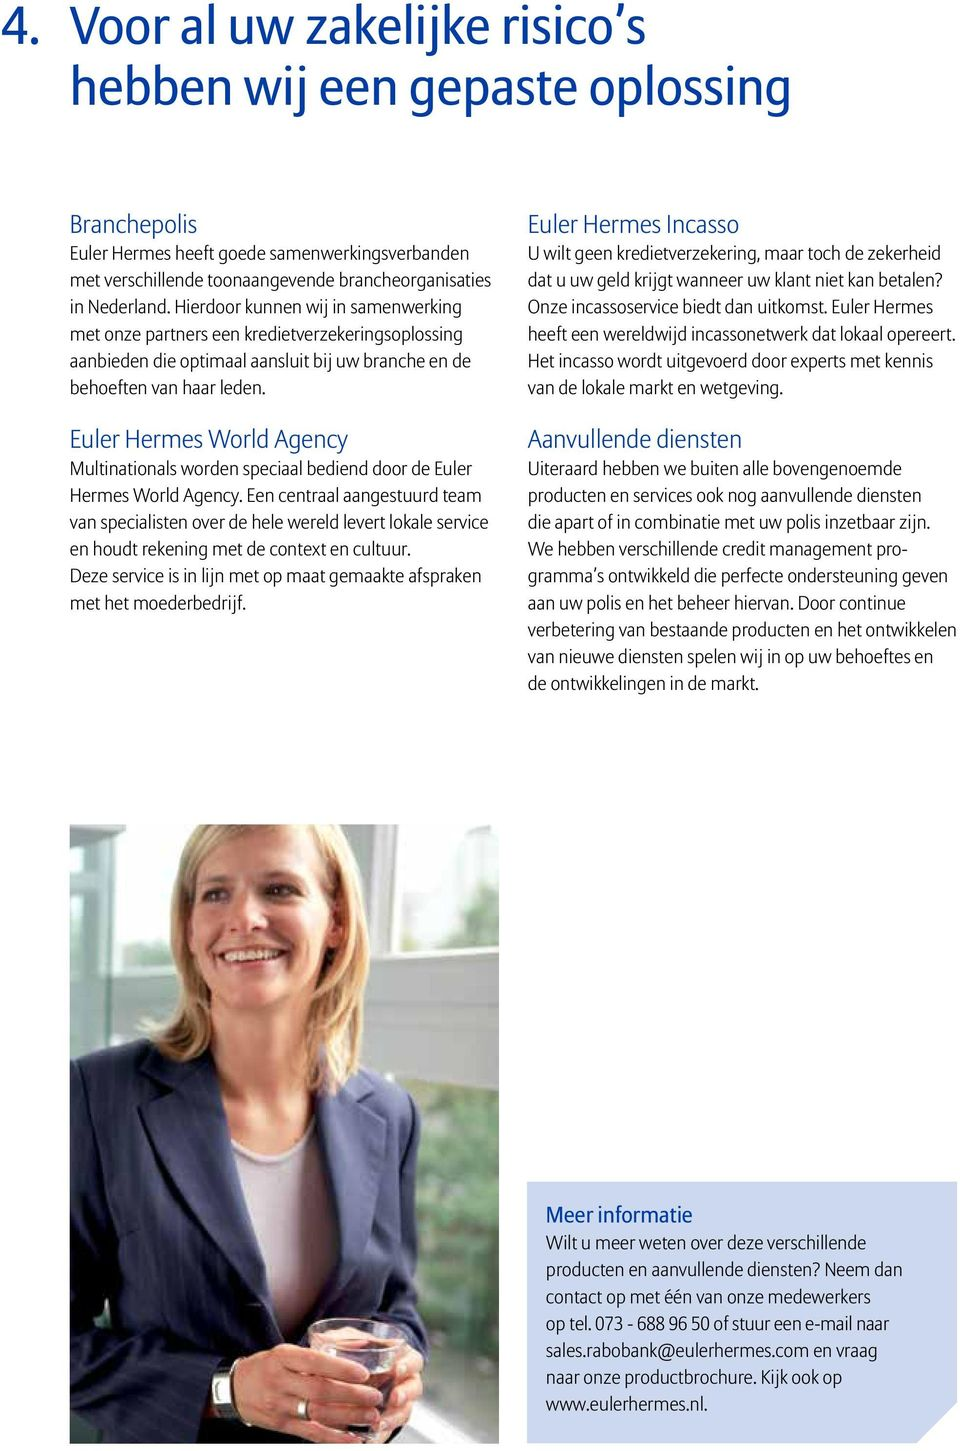 Euler Hermes World Agency Multinationals worden speciaal bediend door de Euler Hermes World Agency.